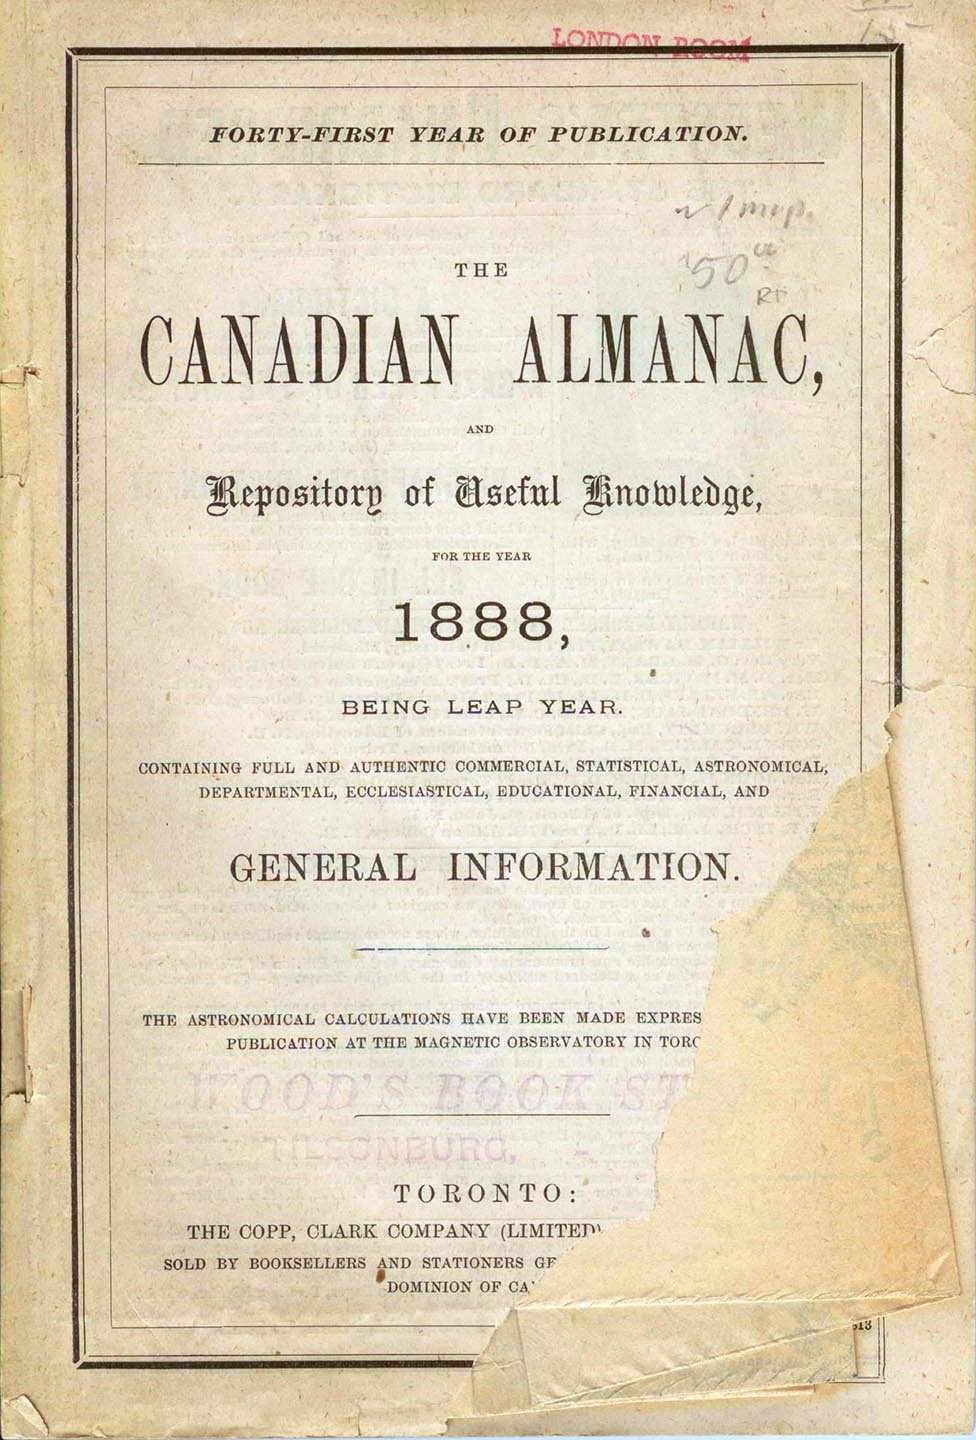 The Canadian Almanac, and Repository of Useful Knowledge for the Year 1888